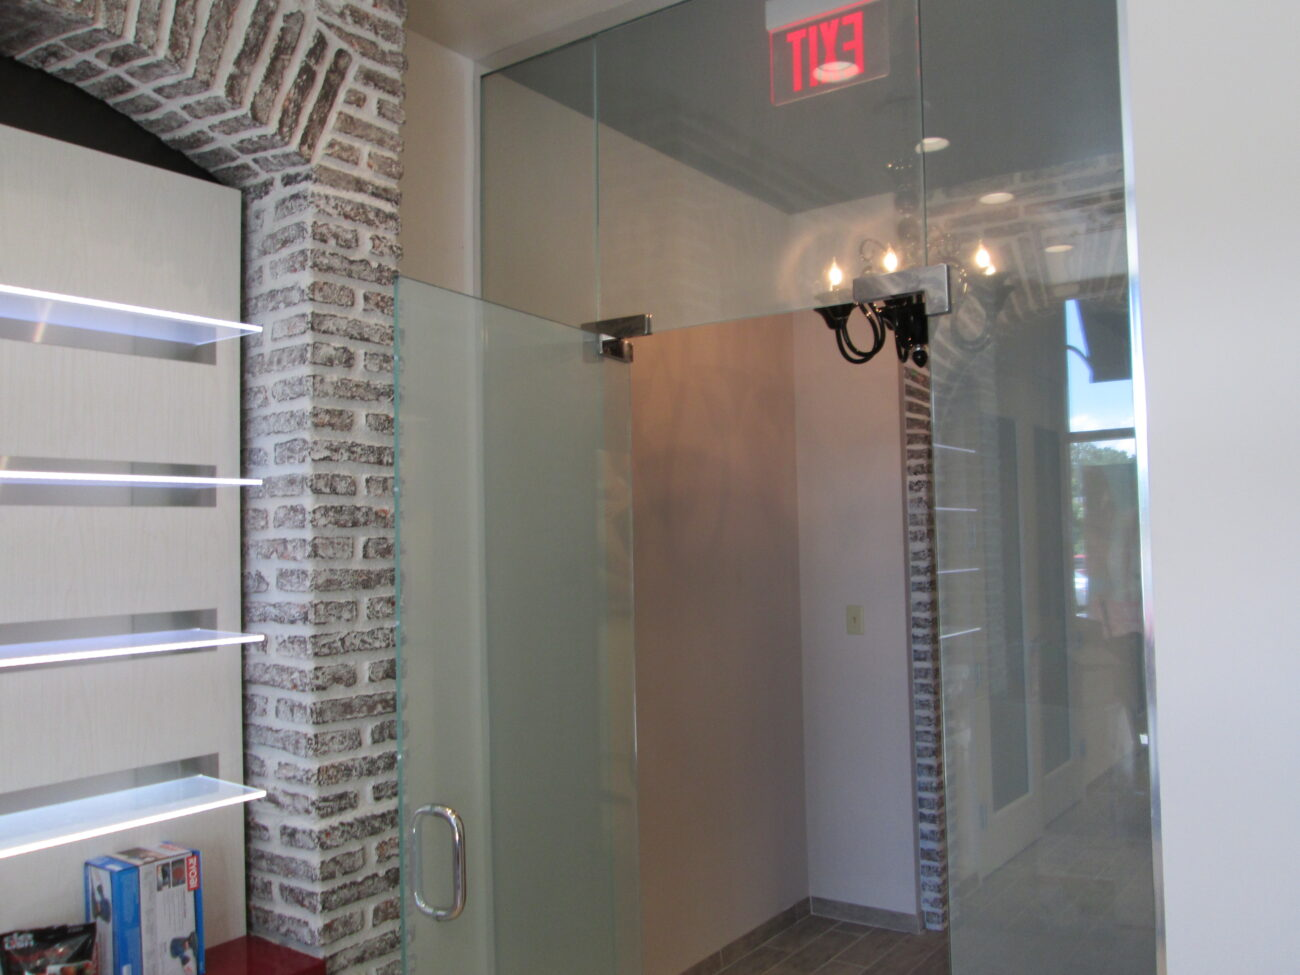 Retail Business Entry Doors : Retail storefront glass aluminum windows in